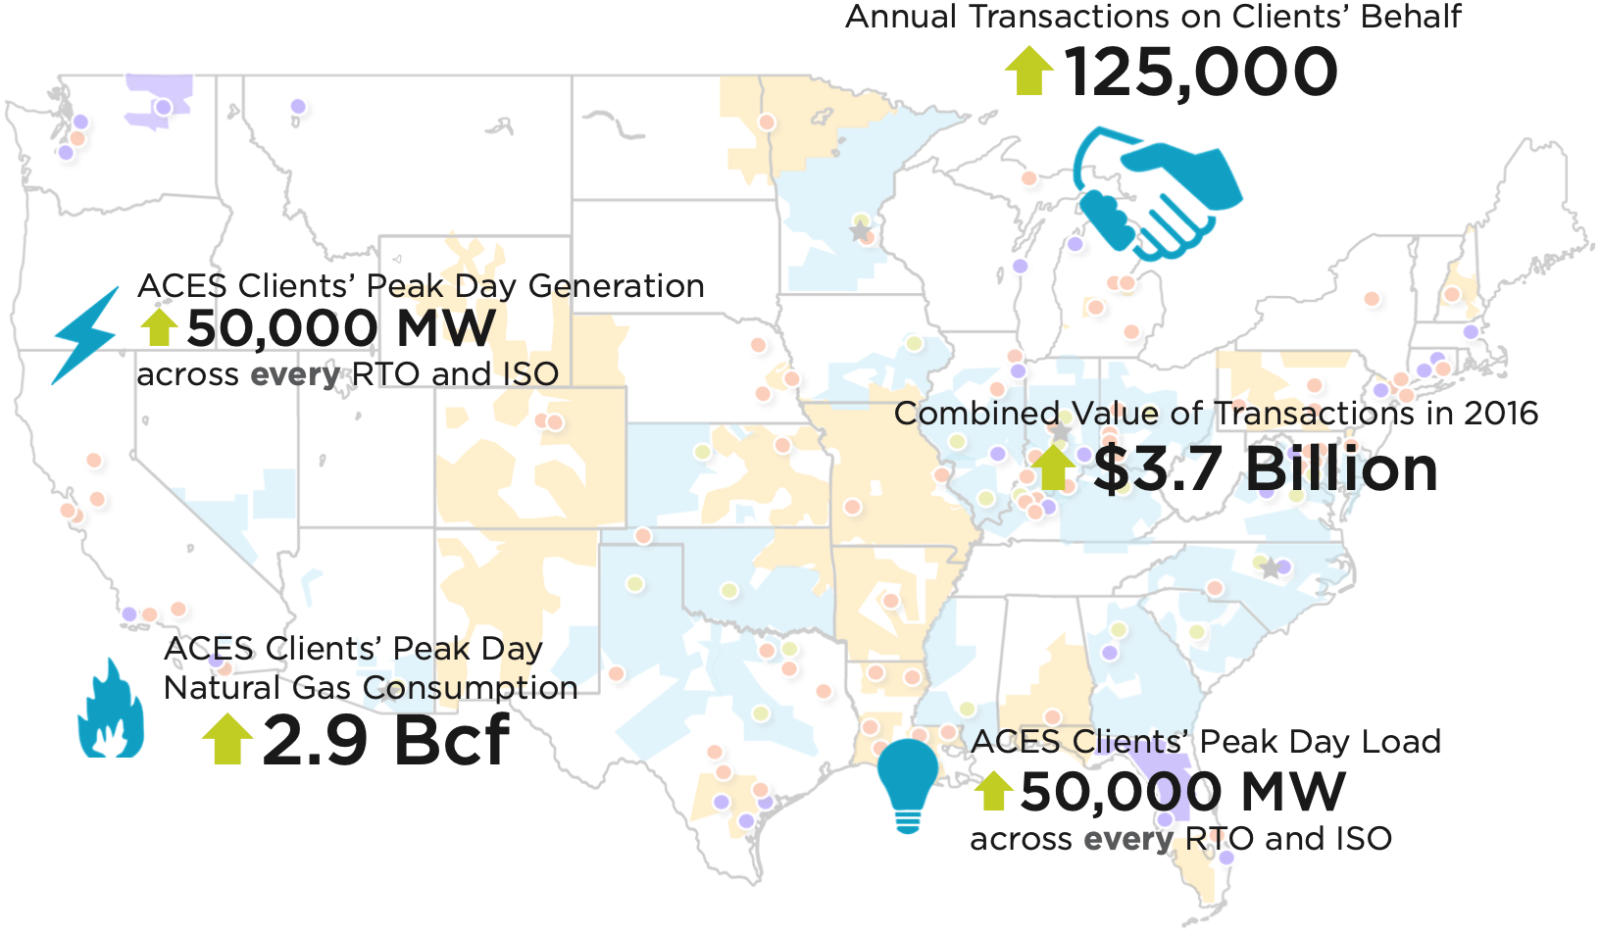 Annual Transactions on Clients' Behalf: increased to 125,000. ACES Clients' Peak Day Generation: increased to 50,000 MW across every RTO and ISO. Combined Value of Transactions in 2016: increased to $3.7 Billion. ACES Clients' Peak Day Natural Gas Consumption: increased to 2.9 Bcf. ACES Clients' Peak Day Load: increased to 50,000 MW across every RTO and ISO.